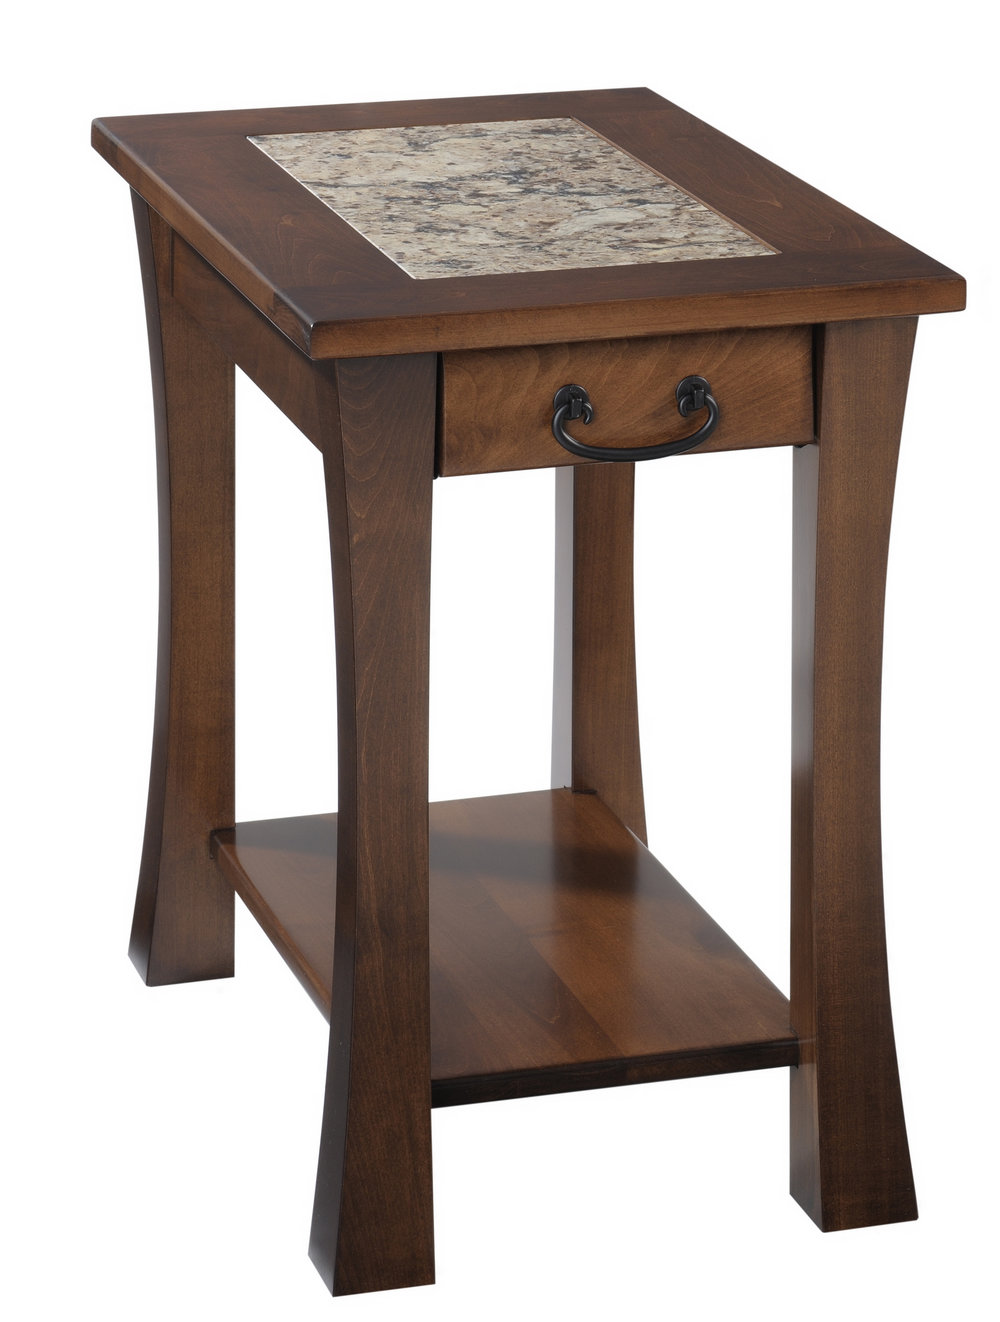 Woodbury chairside table